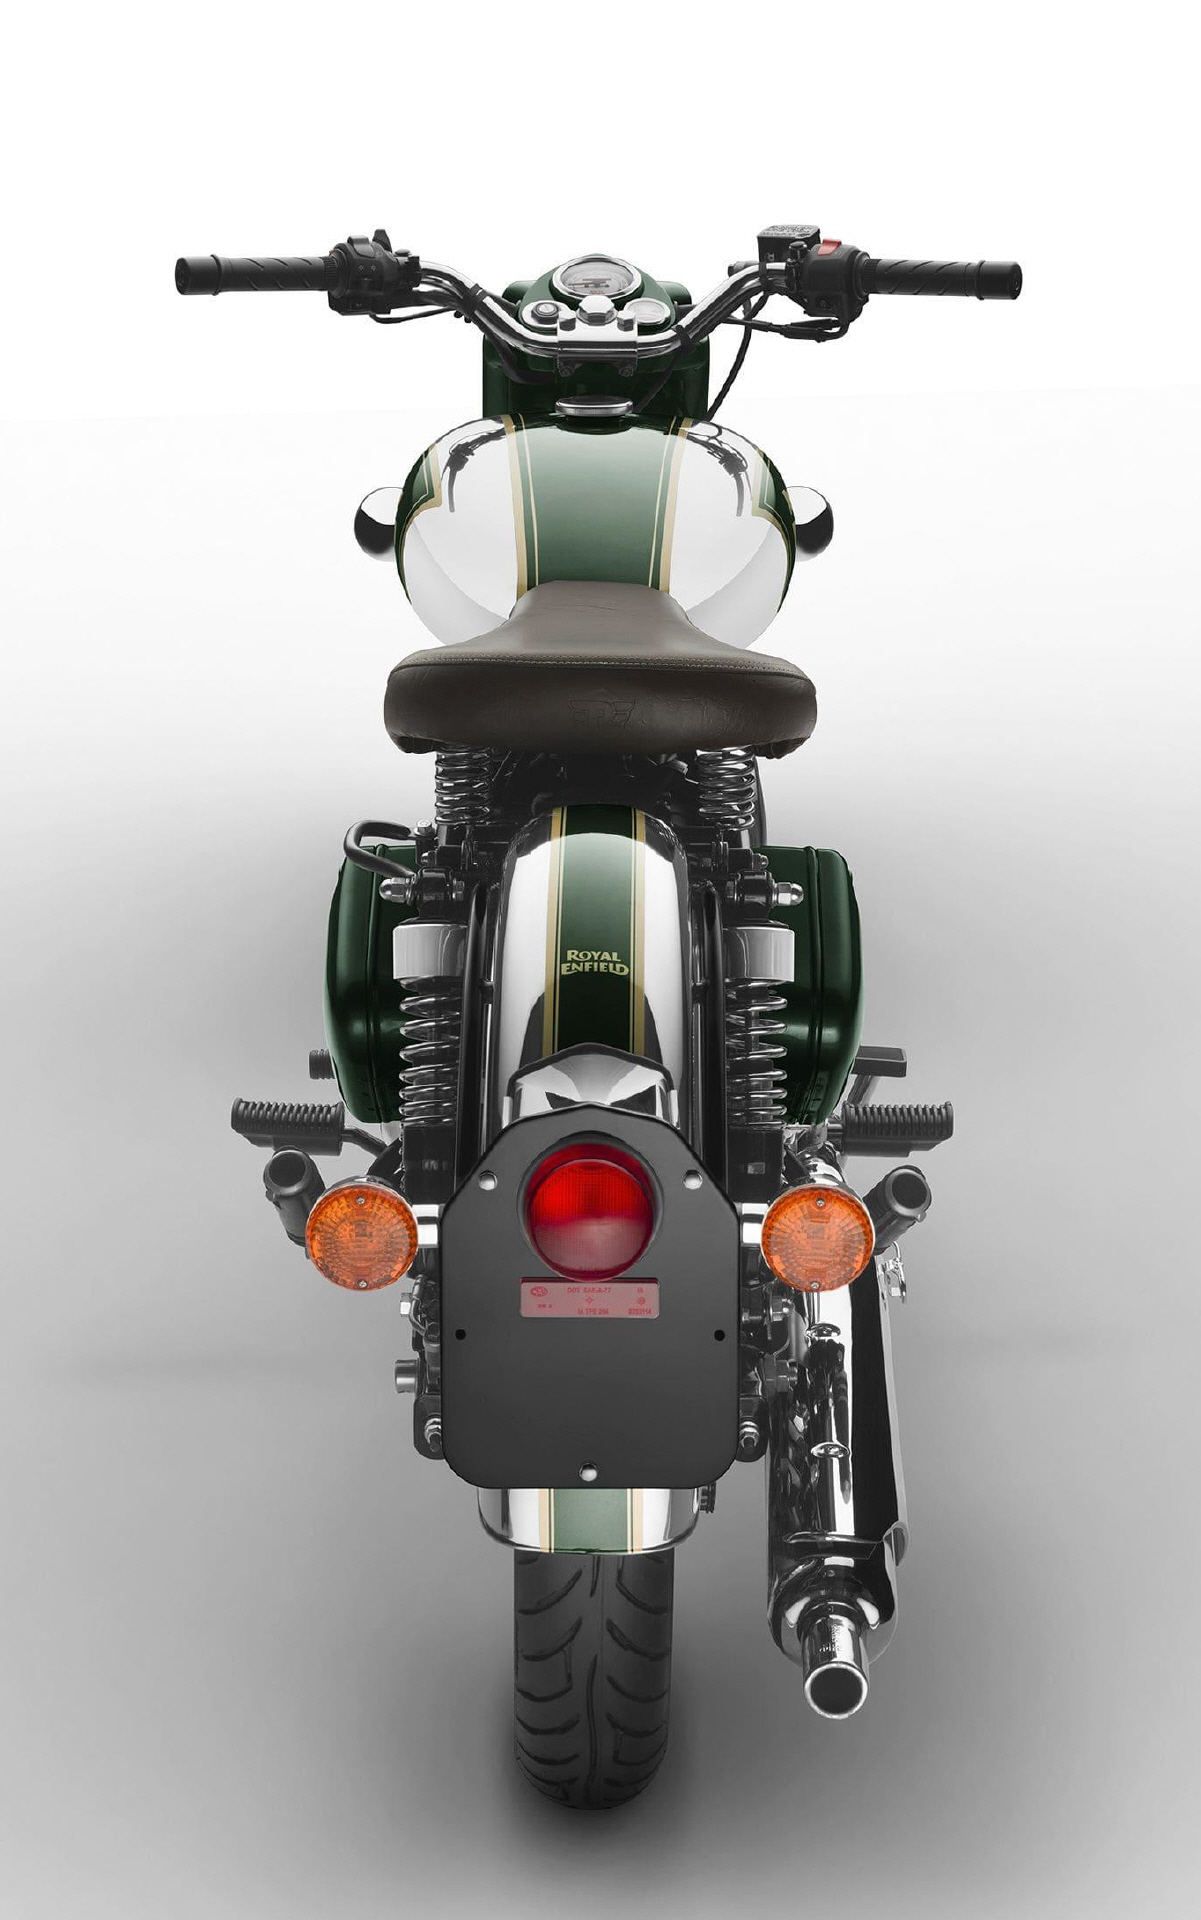 royalenfield_classic_chrome_green_04jpg